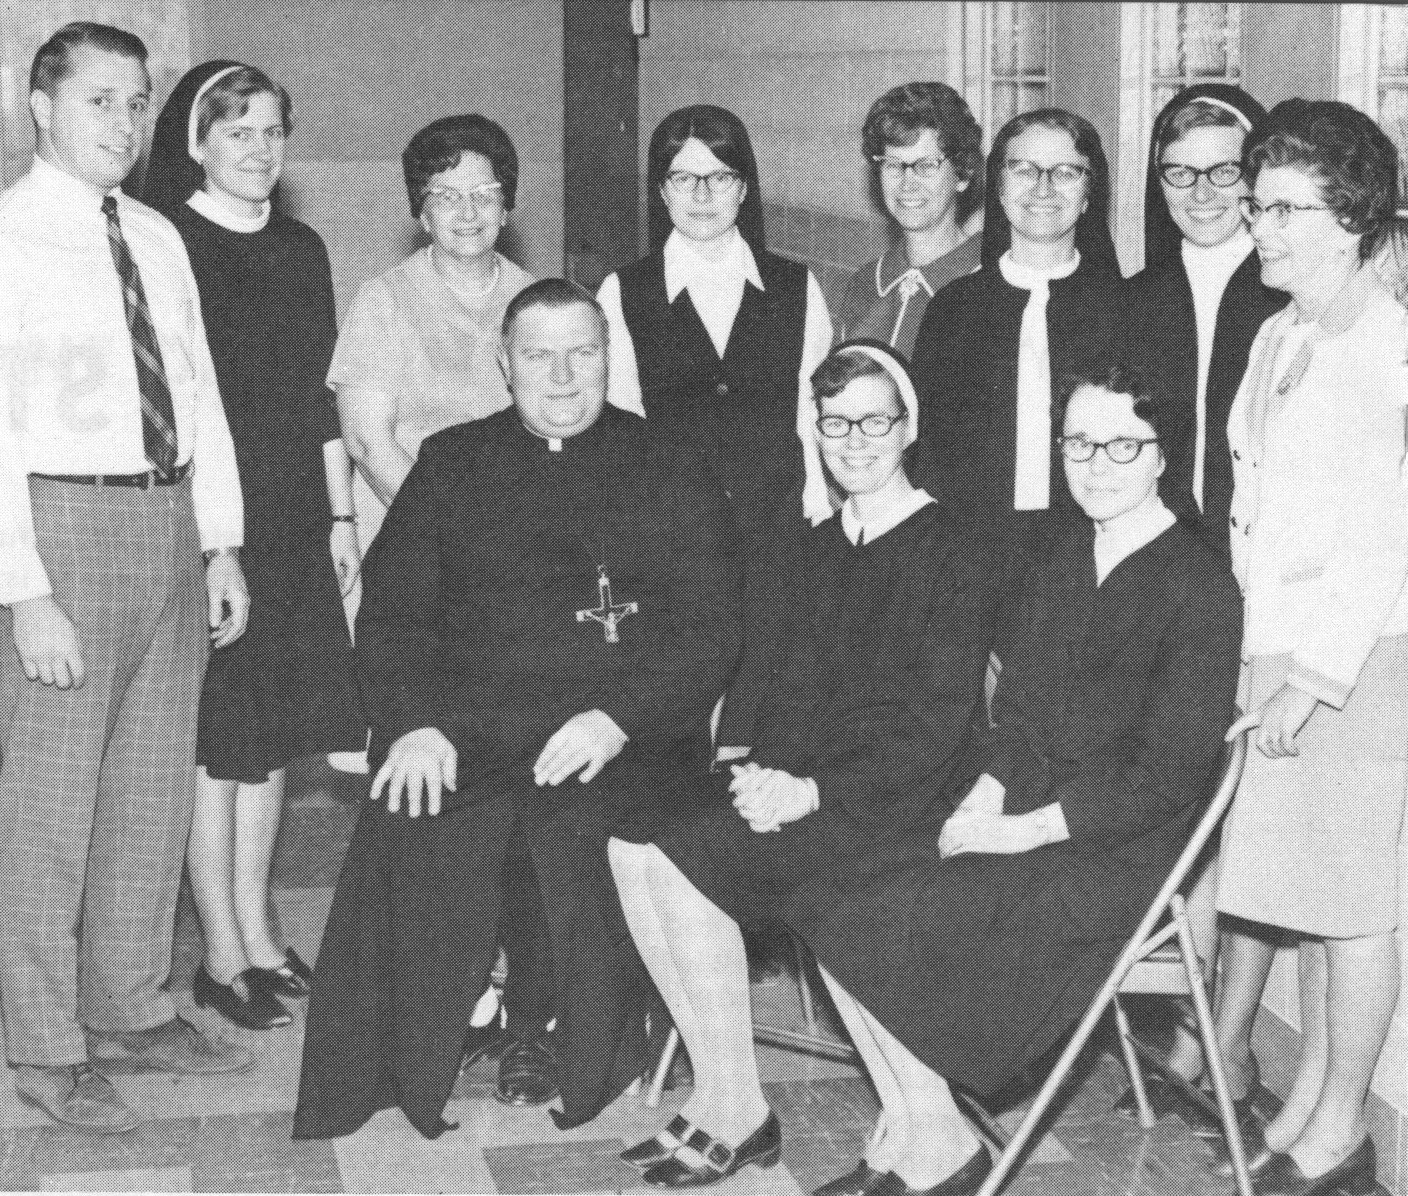 Faculty and staff of St. Louis School, c. 1970.